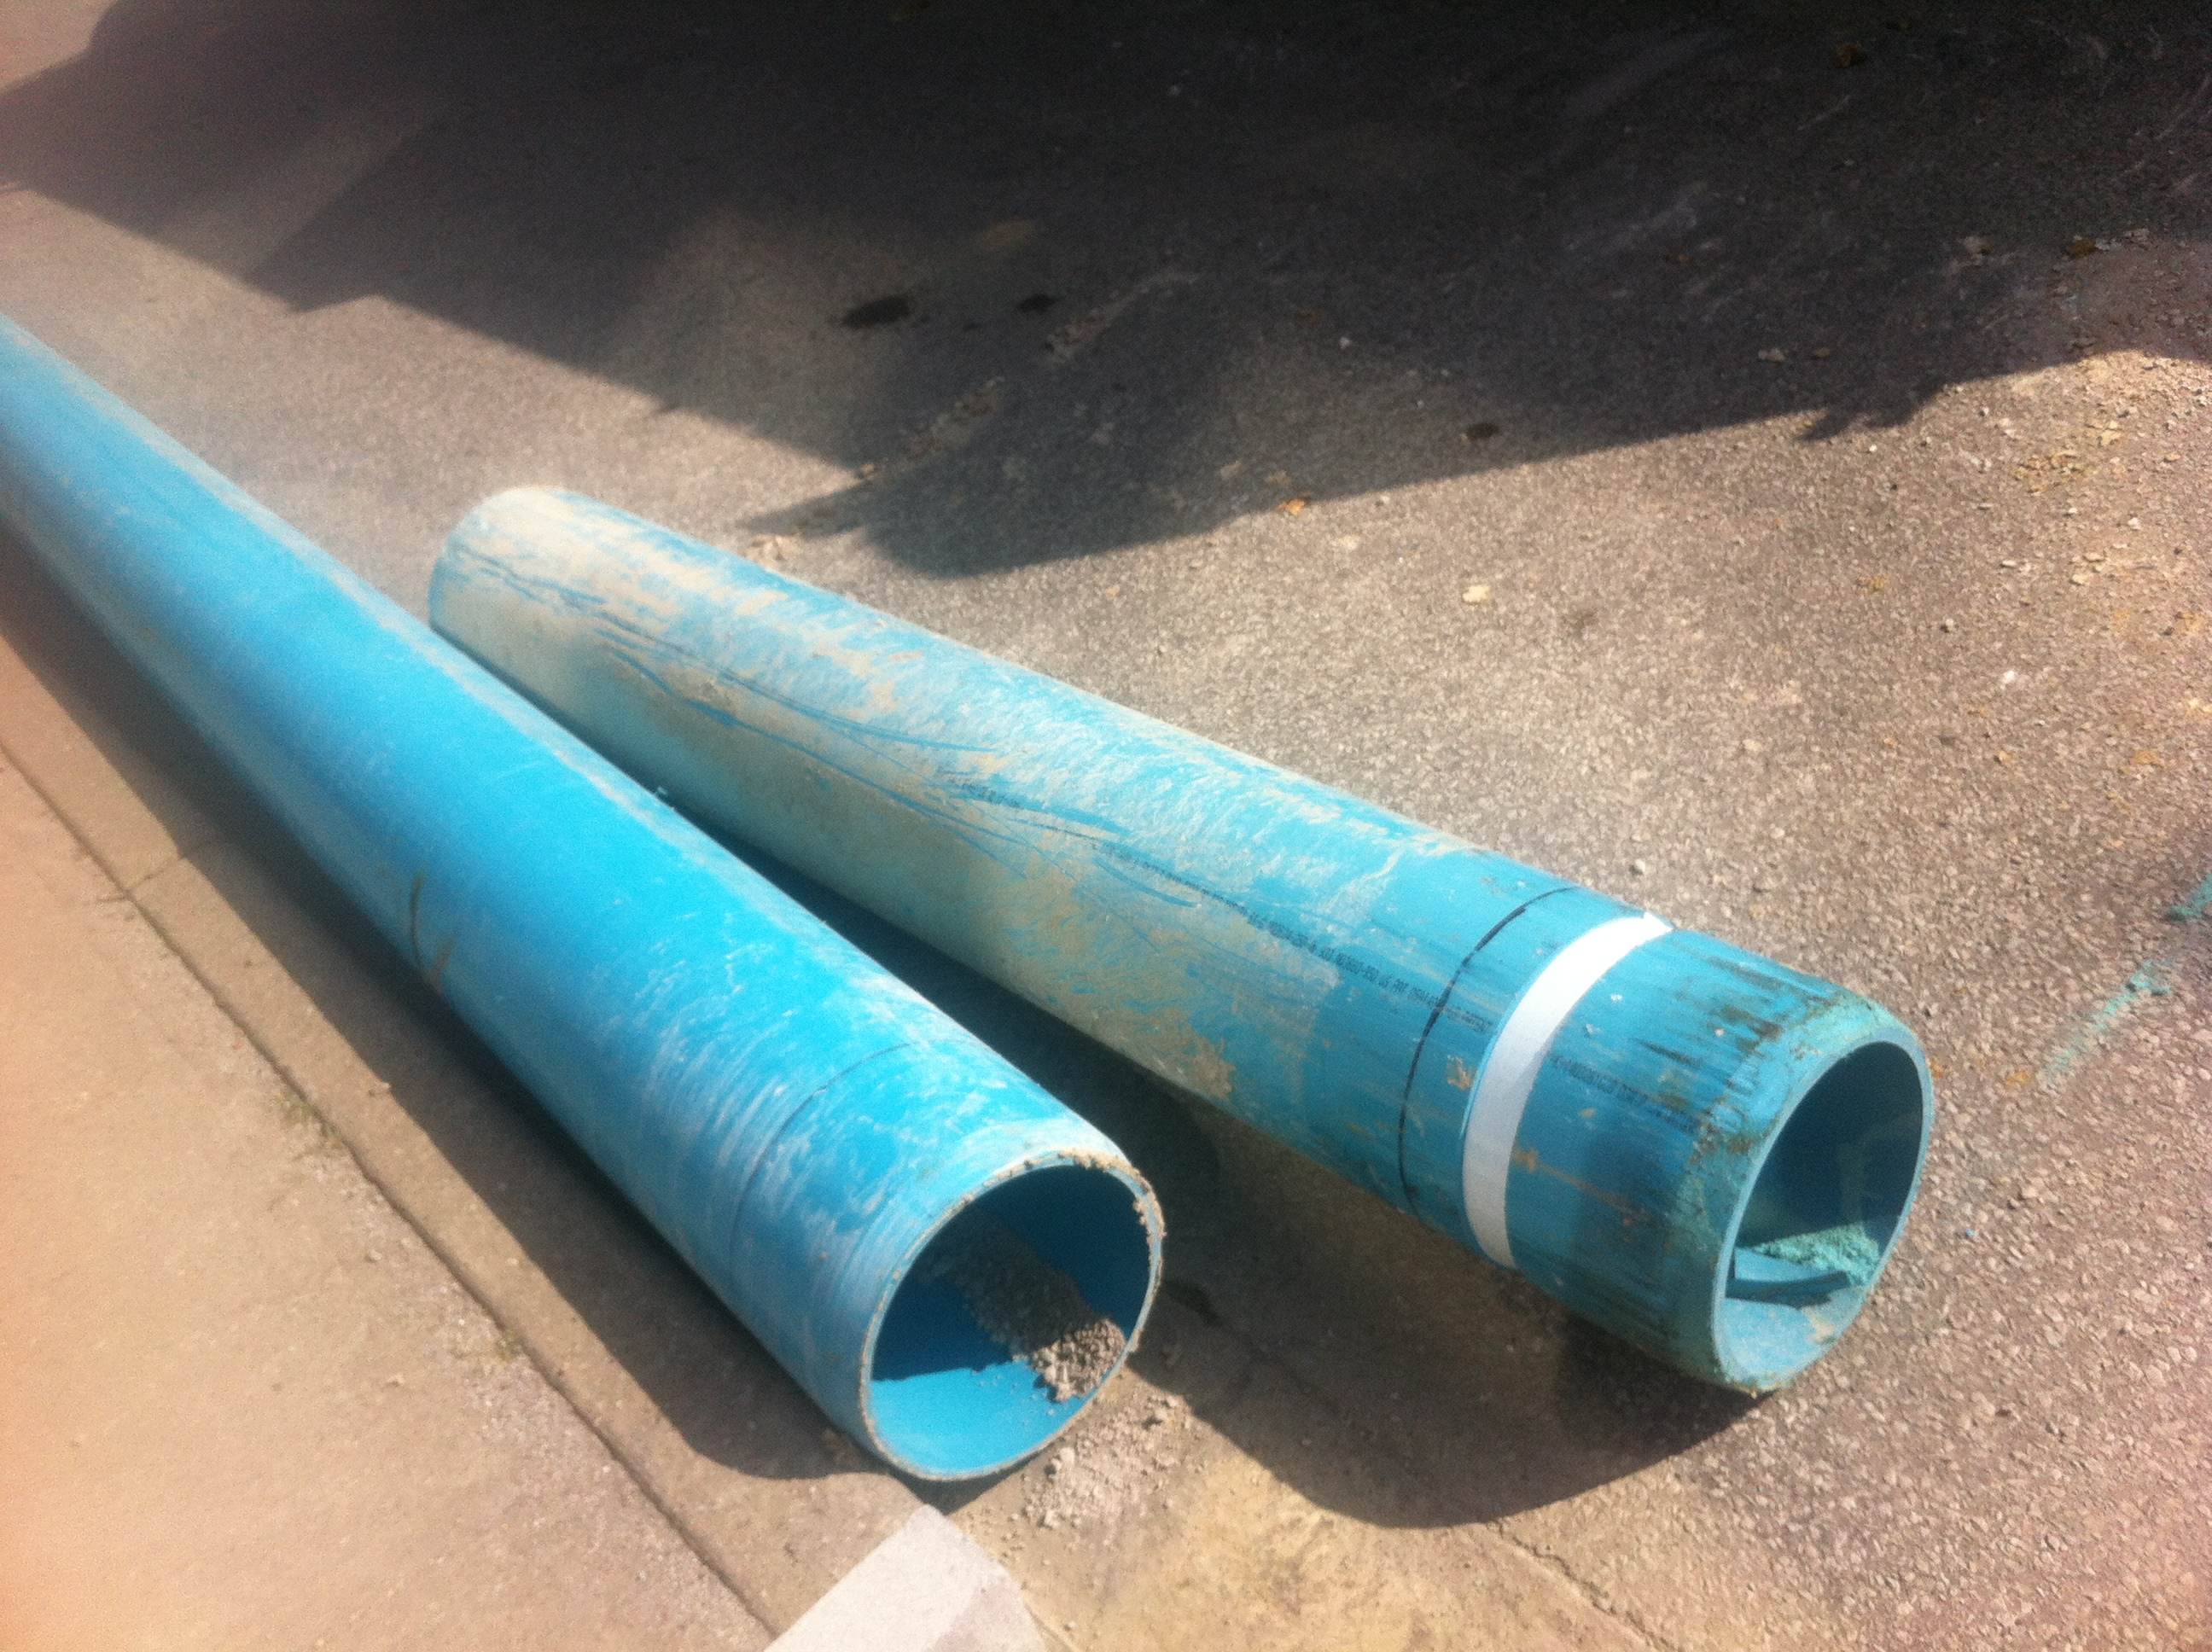 Watermain pipes. (Photo by Adelle Loiselle.)